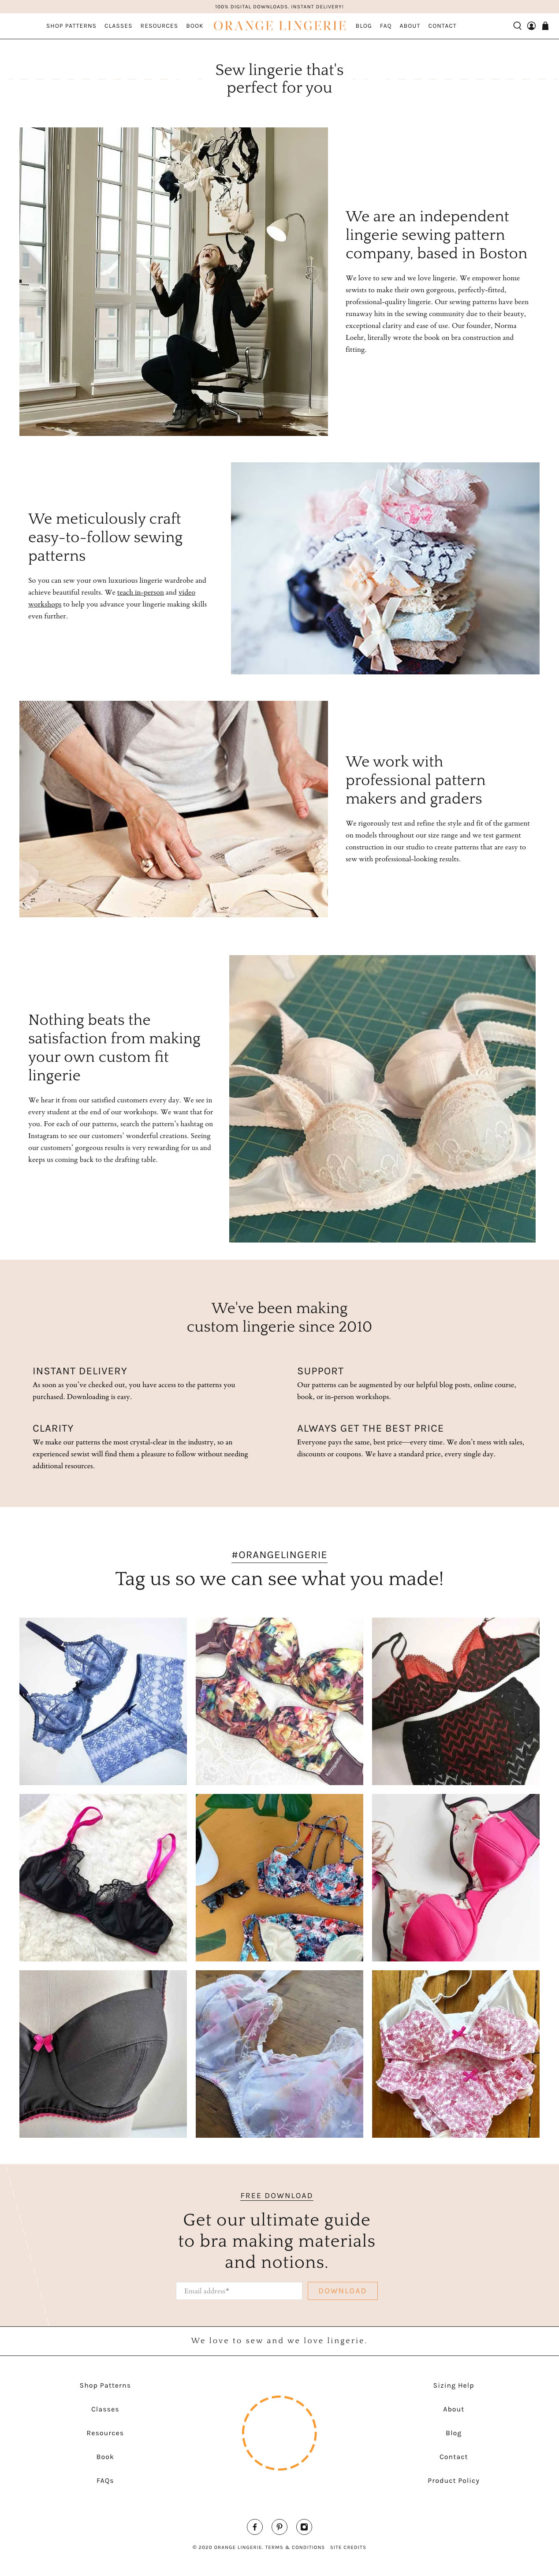 orange lingerie's new about page on shopify